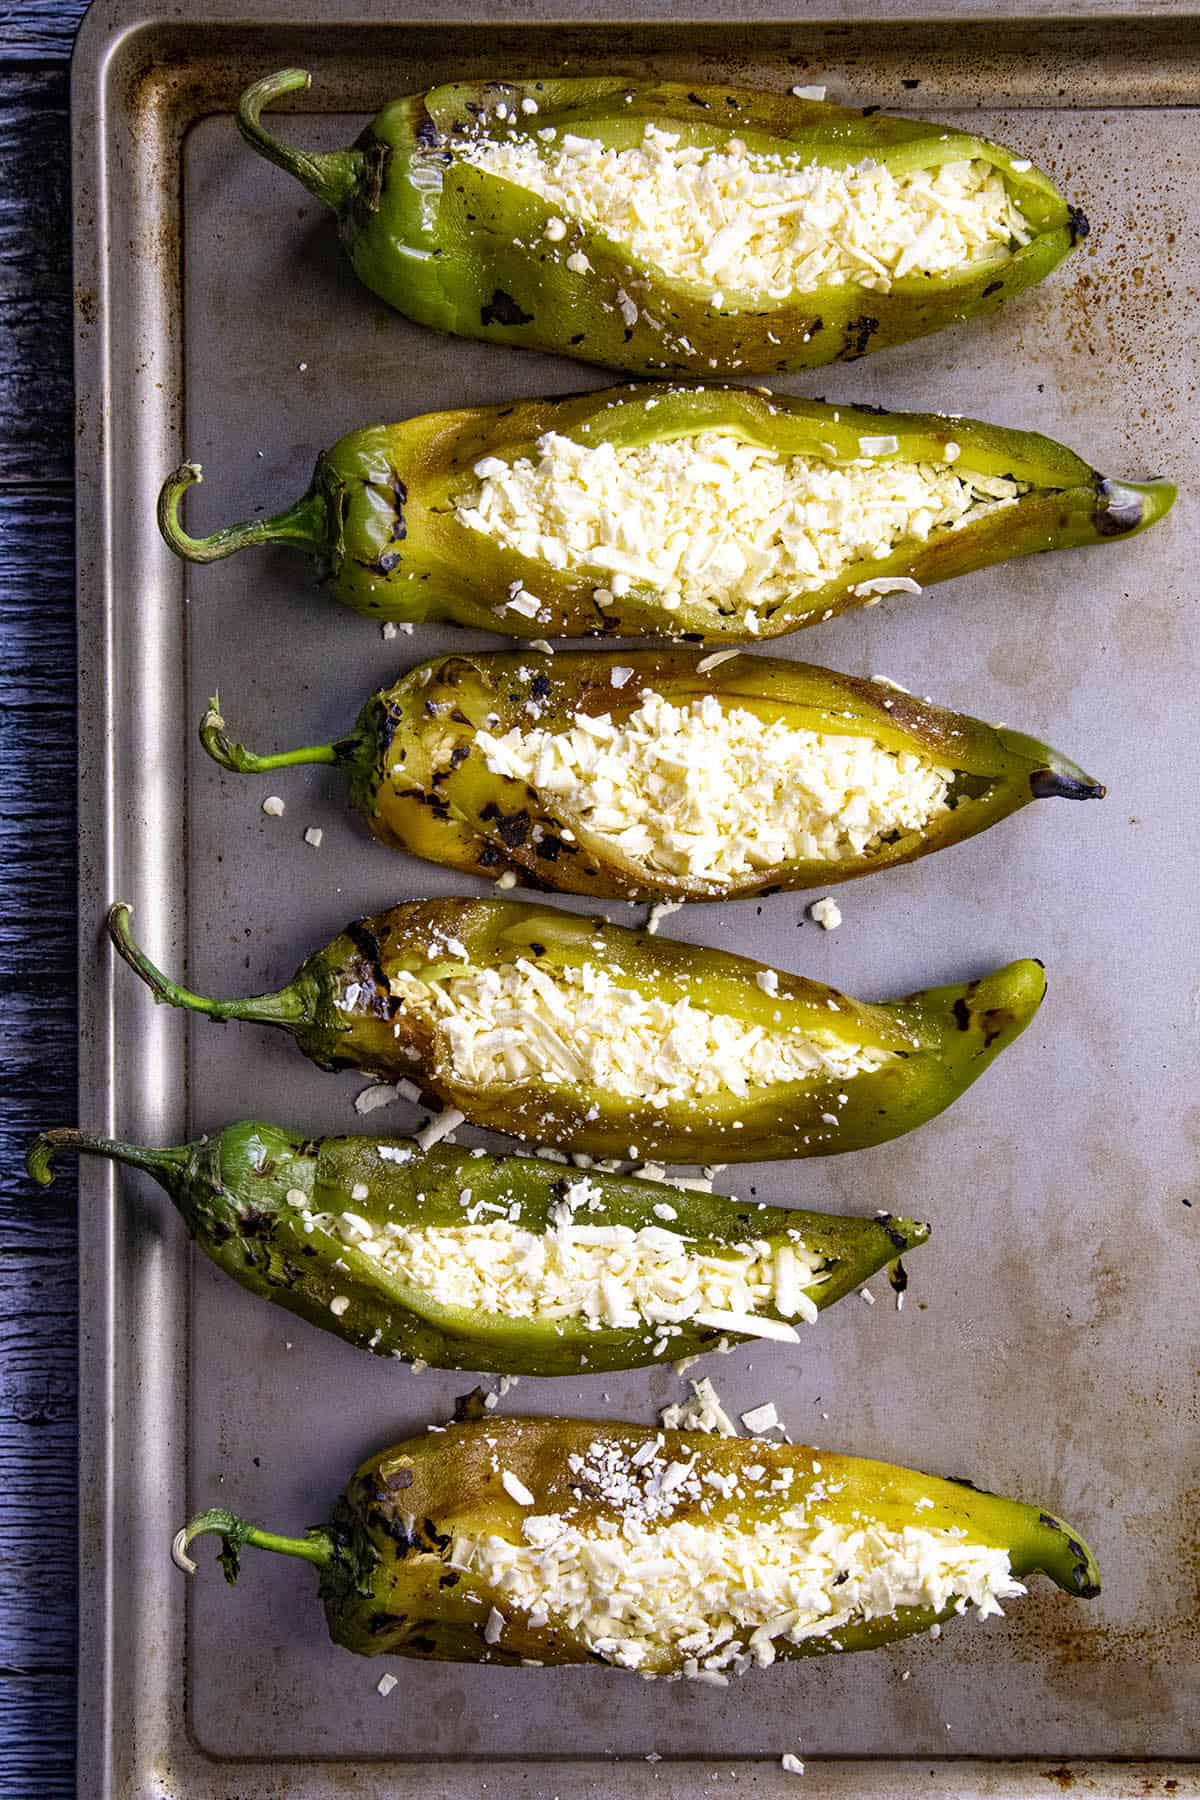 Stuffing roasted chiles with melty cheese